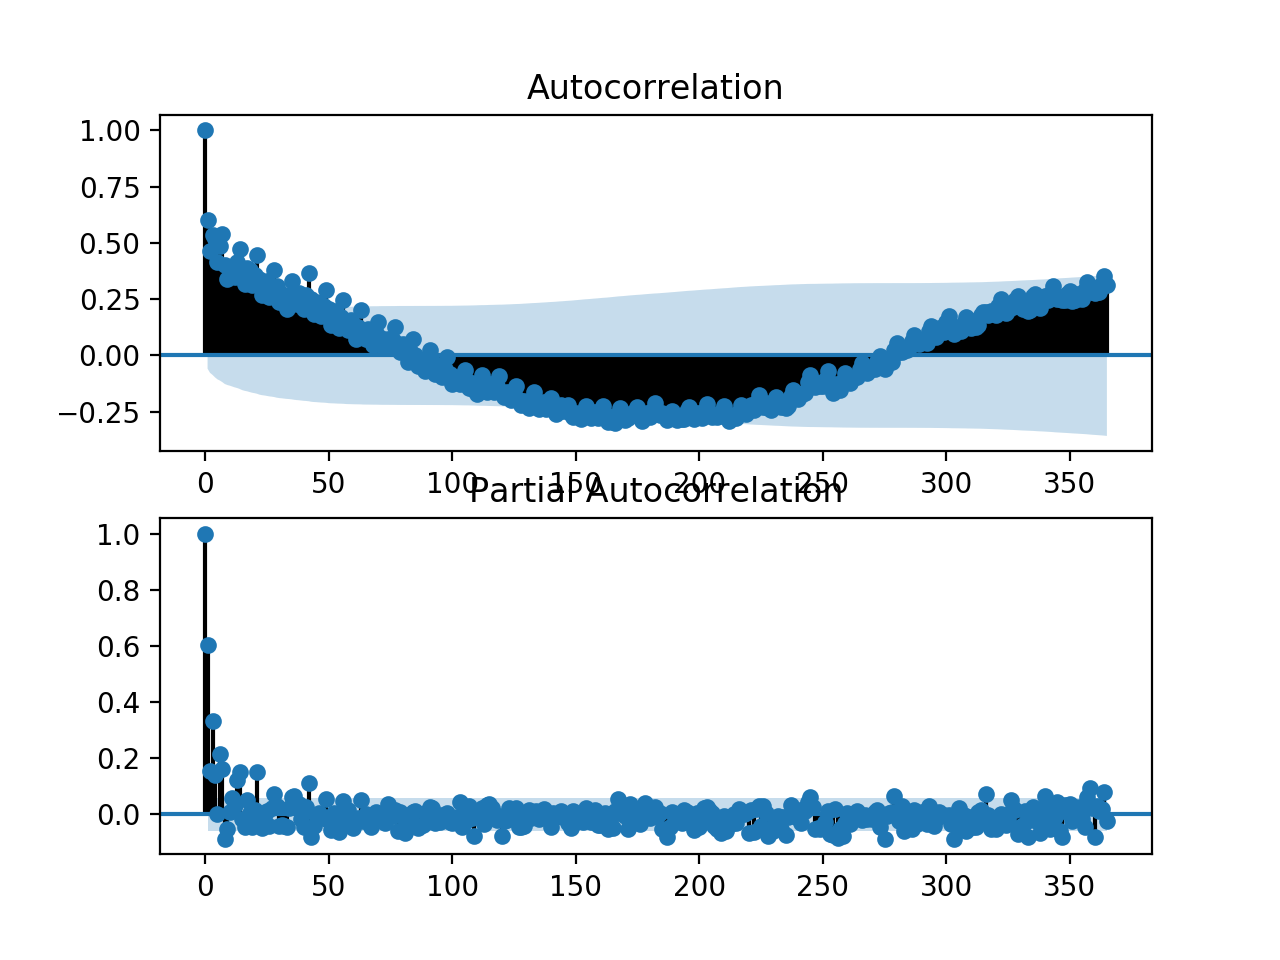 ACF and PACF plots for the univariate series of power consumption